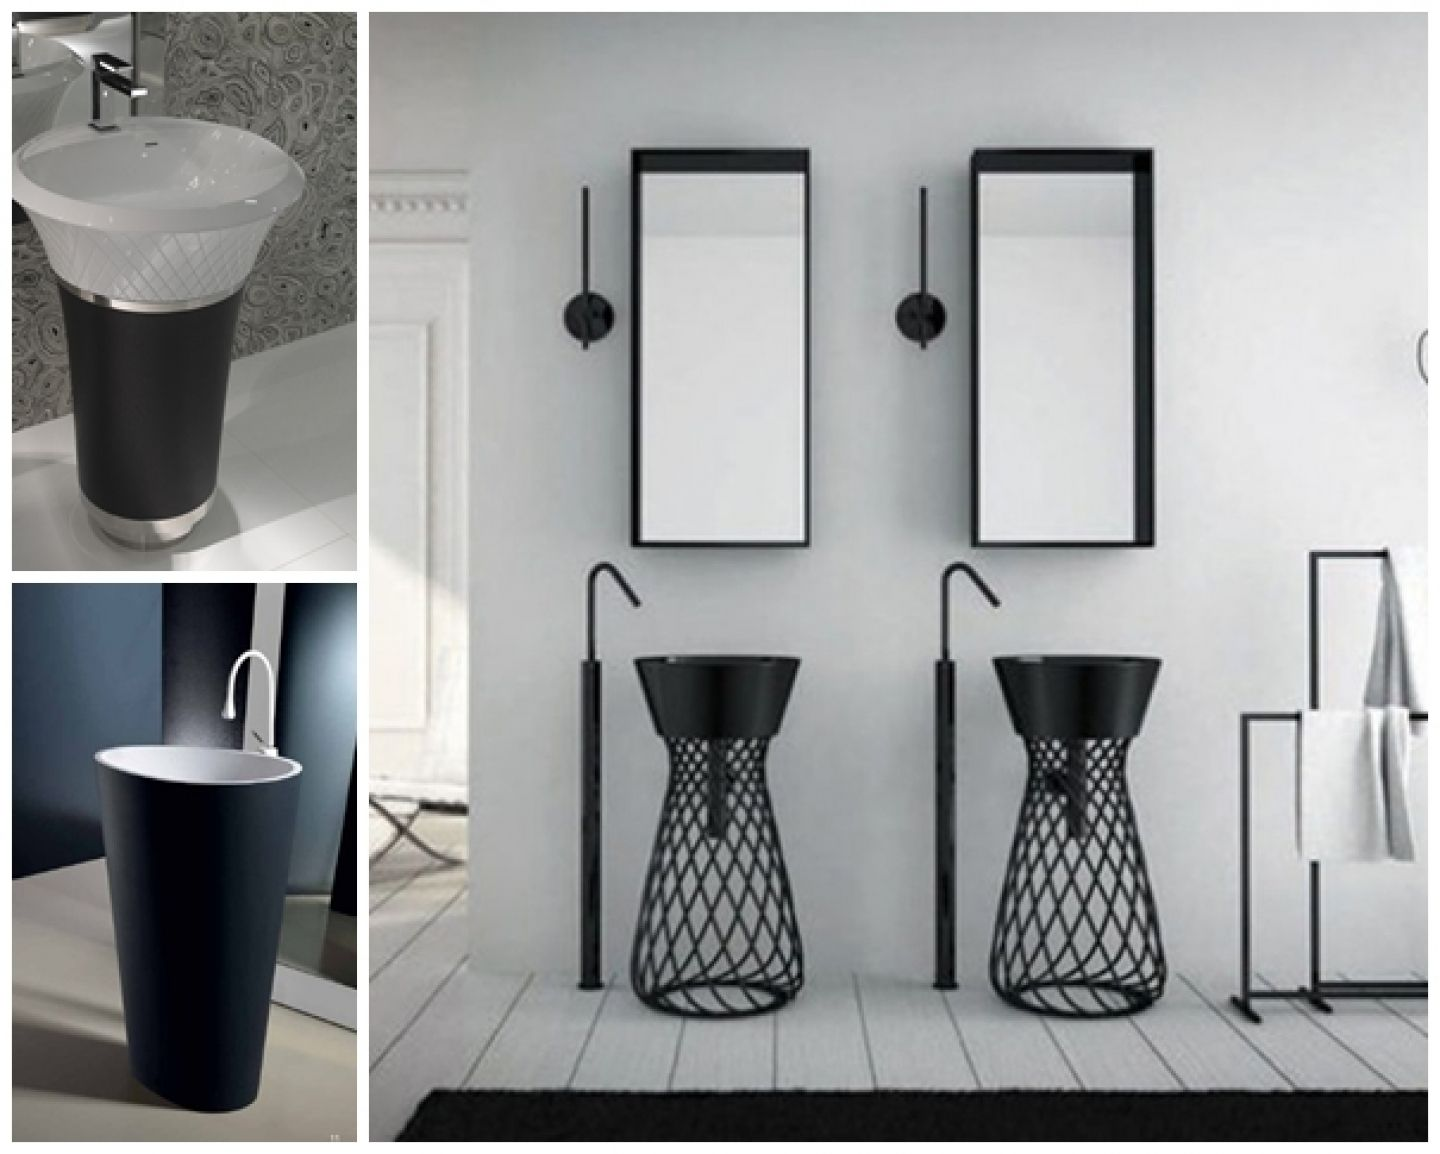 Stylish Pedestal Sink Storage Inside Unusual Bathroom With Black Framed  Wall Mirror And Black Faucet